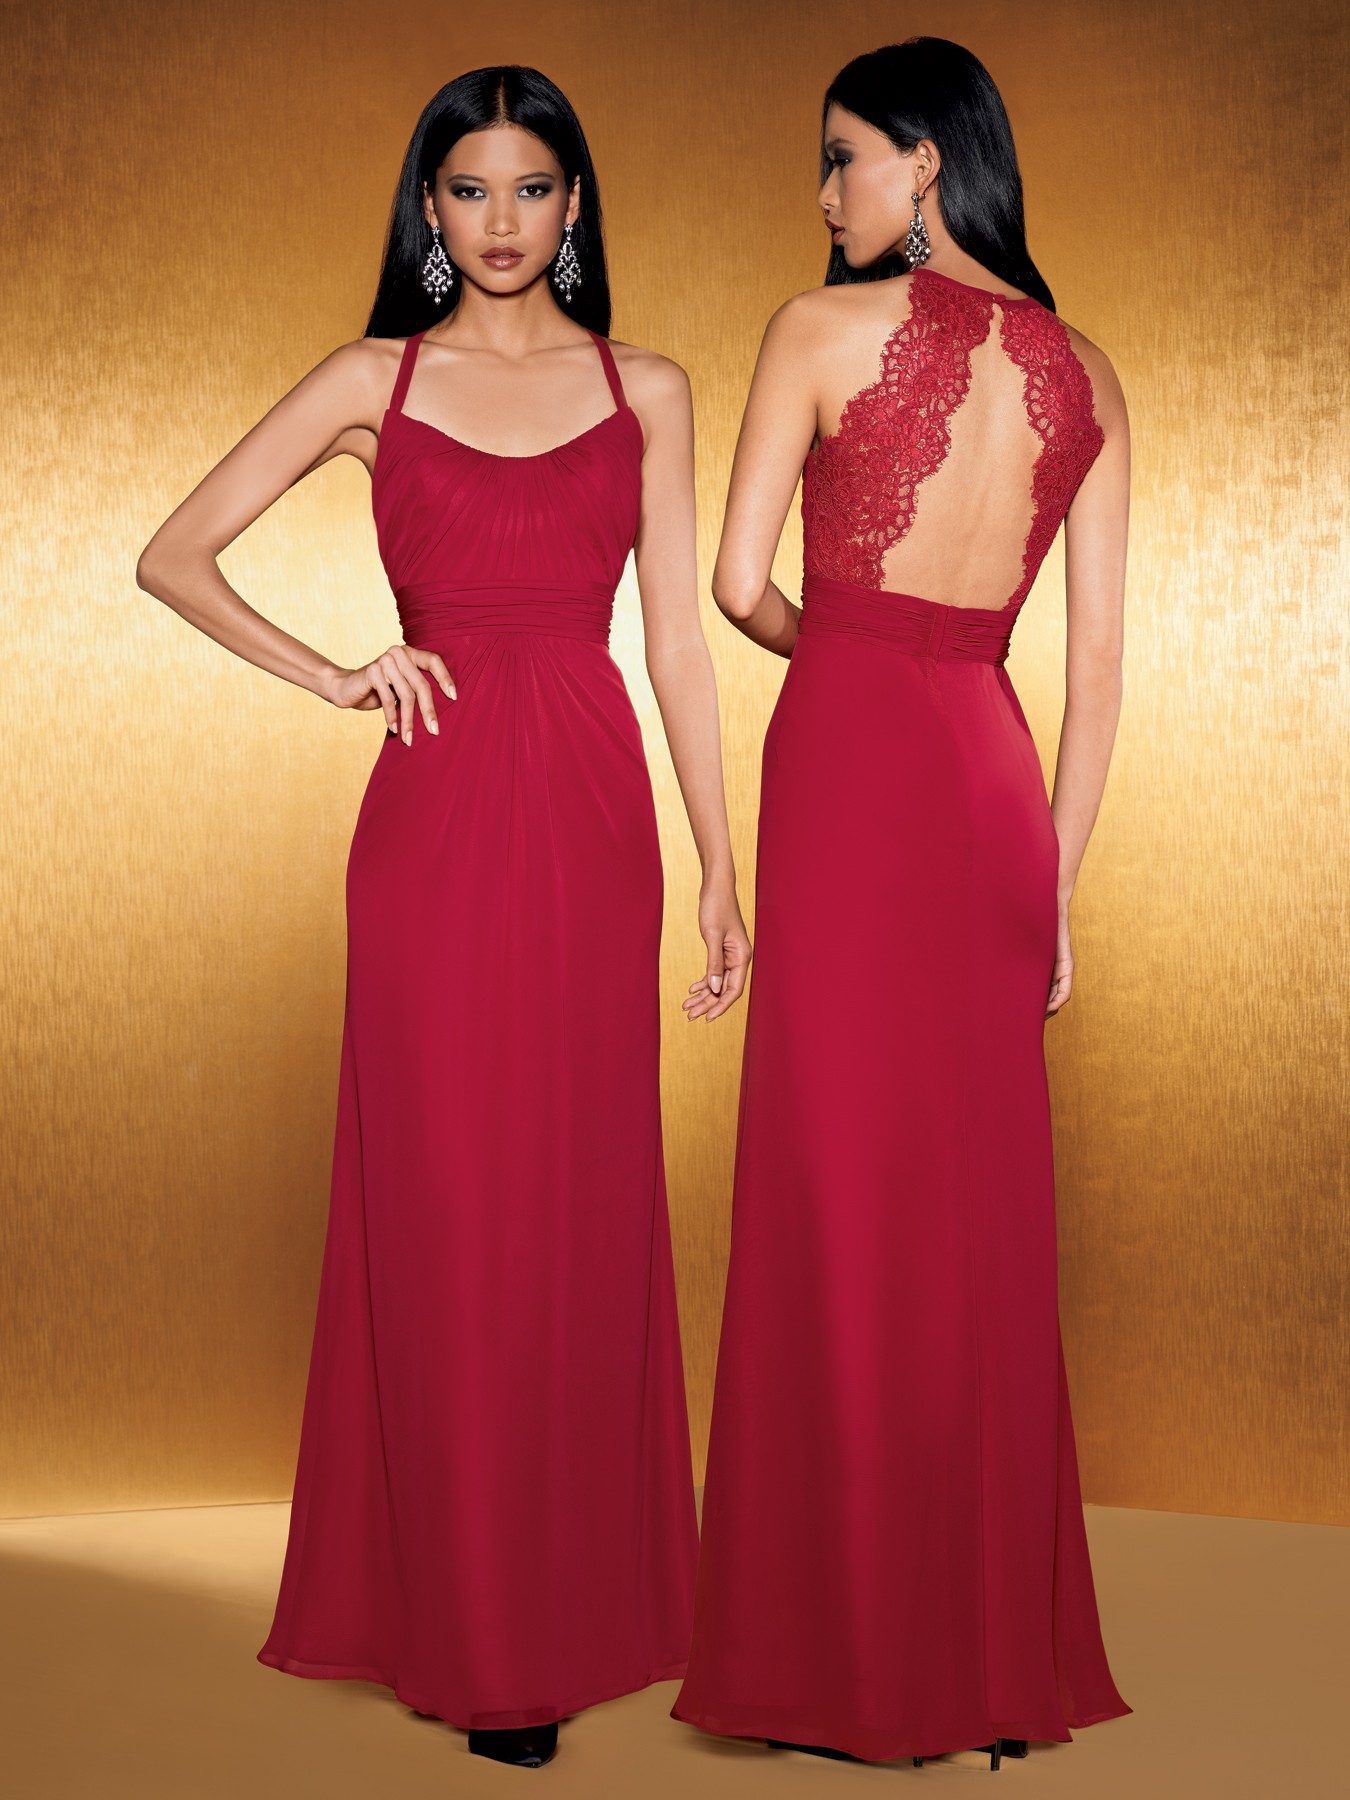 Jordan bridesmaids style 1000 poshbridallanc posh jordan jordan bridesmaids style 1000 poshbridallanc posh jordan bridesmaid dress cranberry ombrellifo Image collections